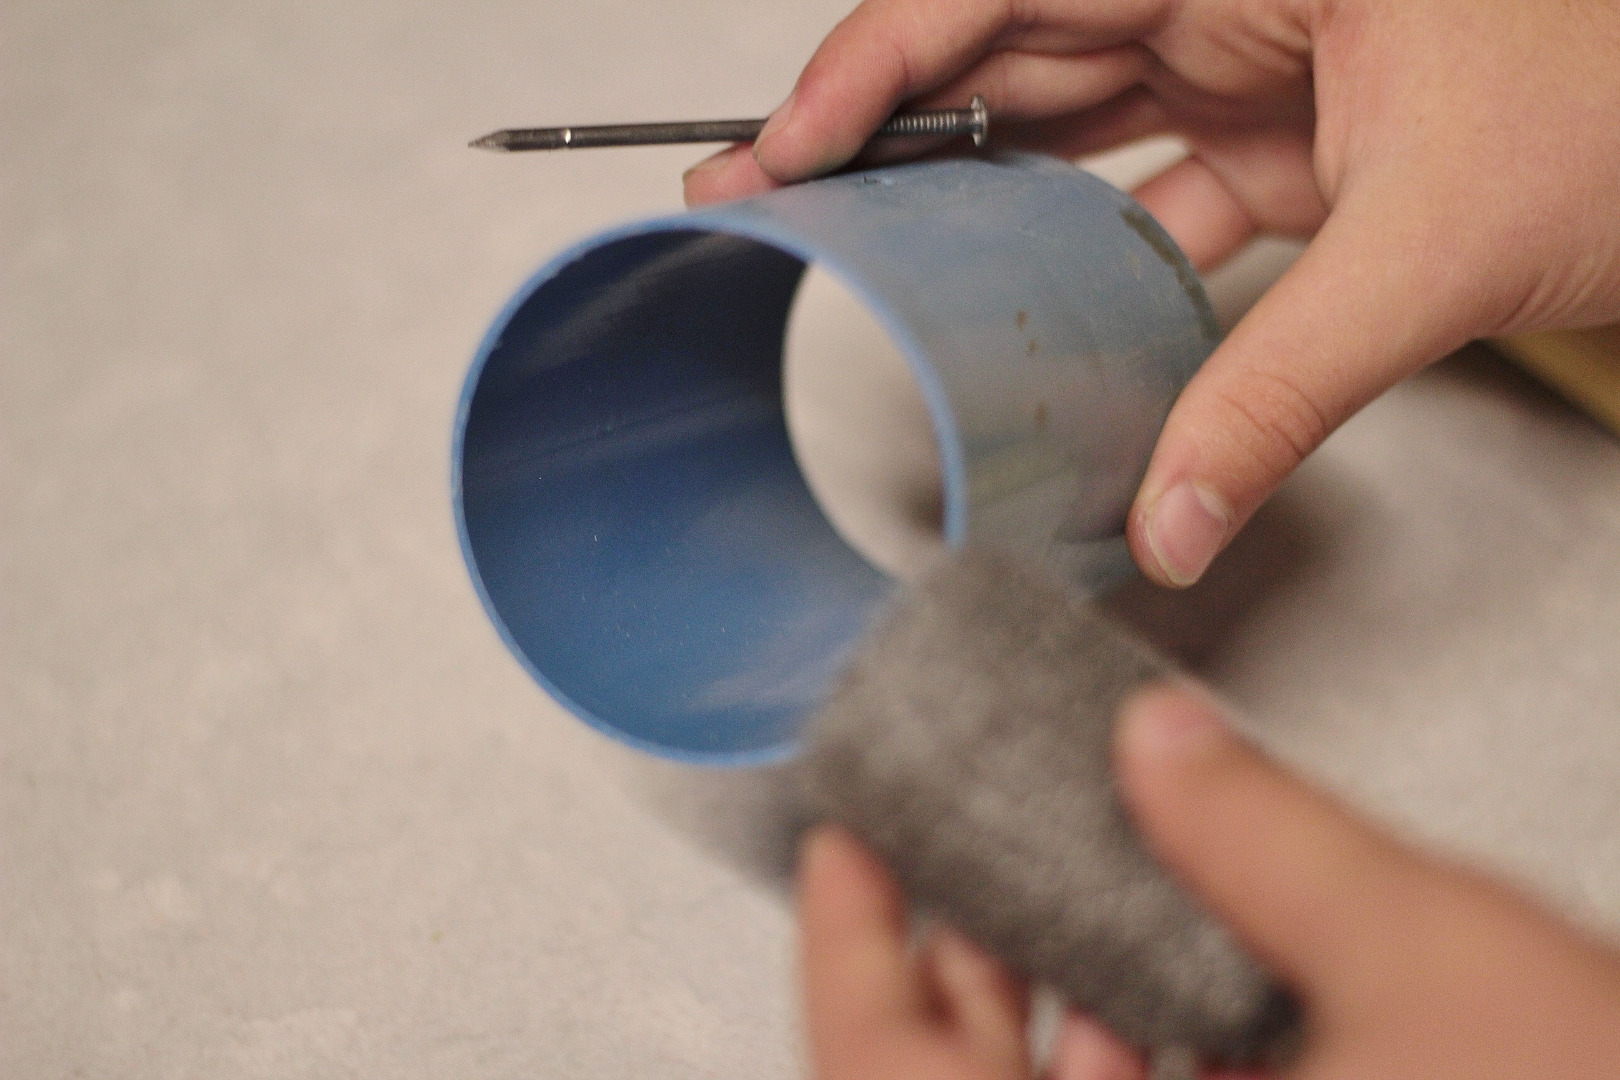 Picture of Take Out the Nail, Insert the Steel Wool, and Replace the Nail